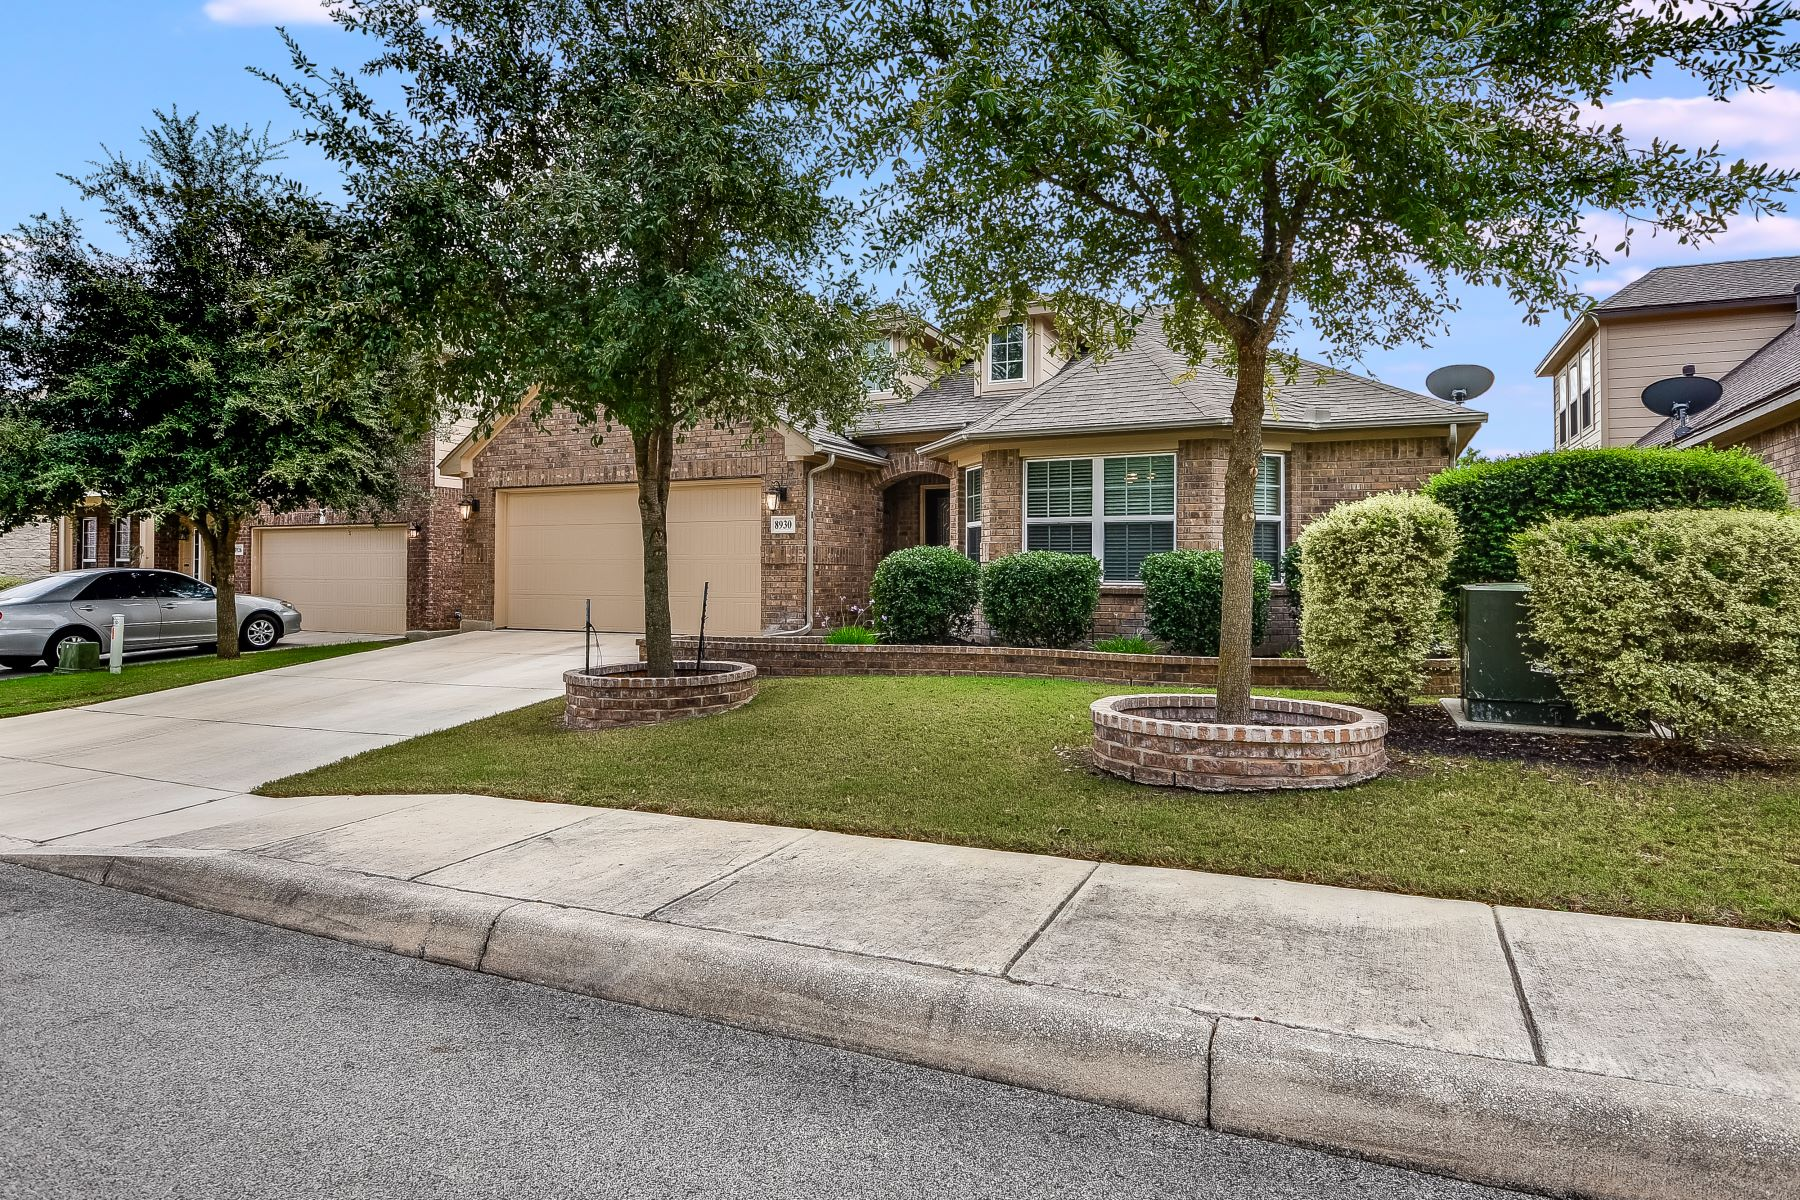 Single Family Home for Sale at Gorgeous One-Story Home in Bavarian Forest 8930 Weimer Forest Helotes, Texas 78023 United States